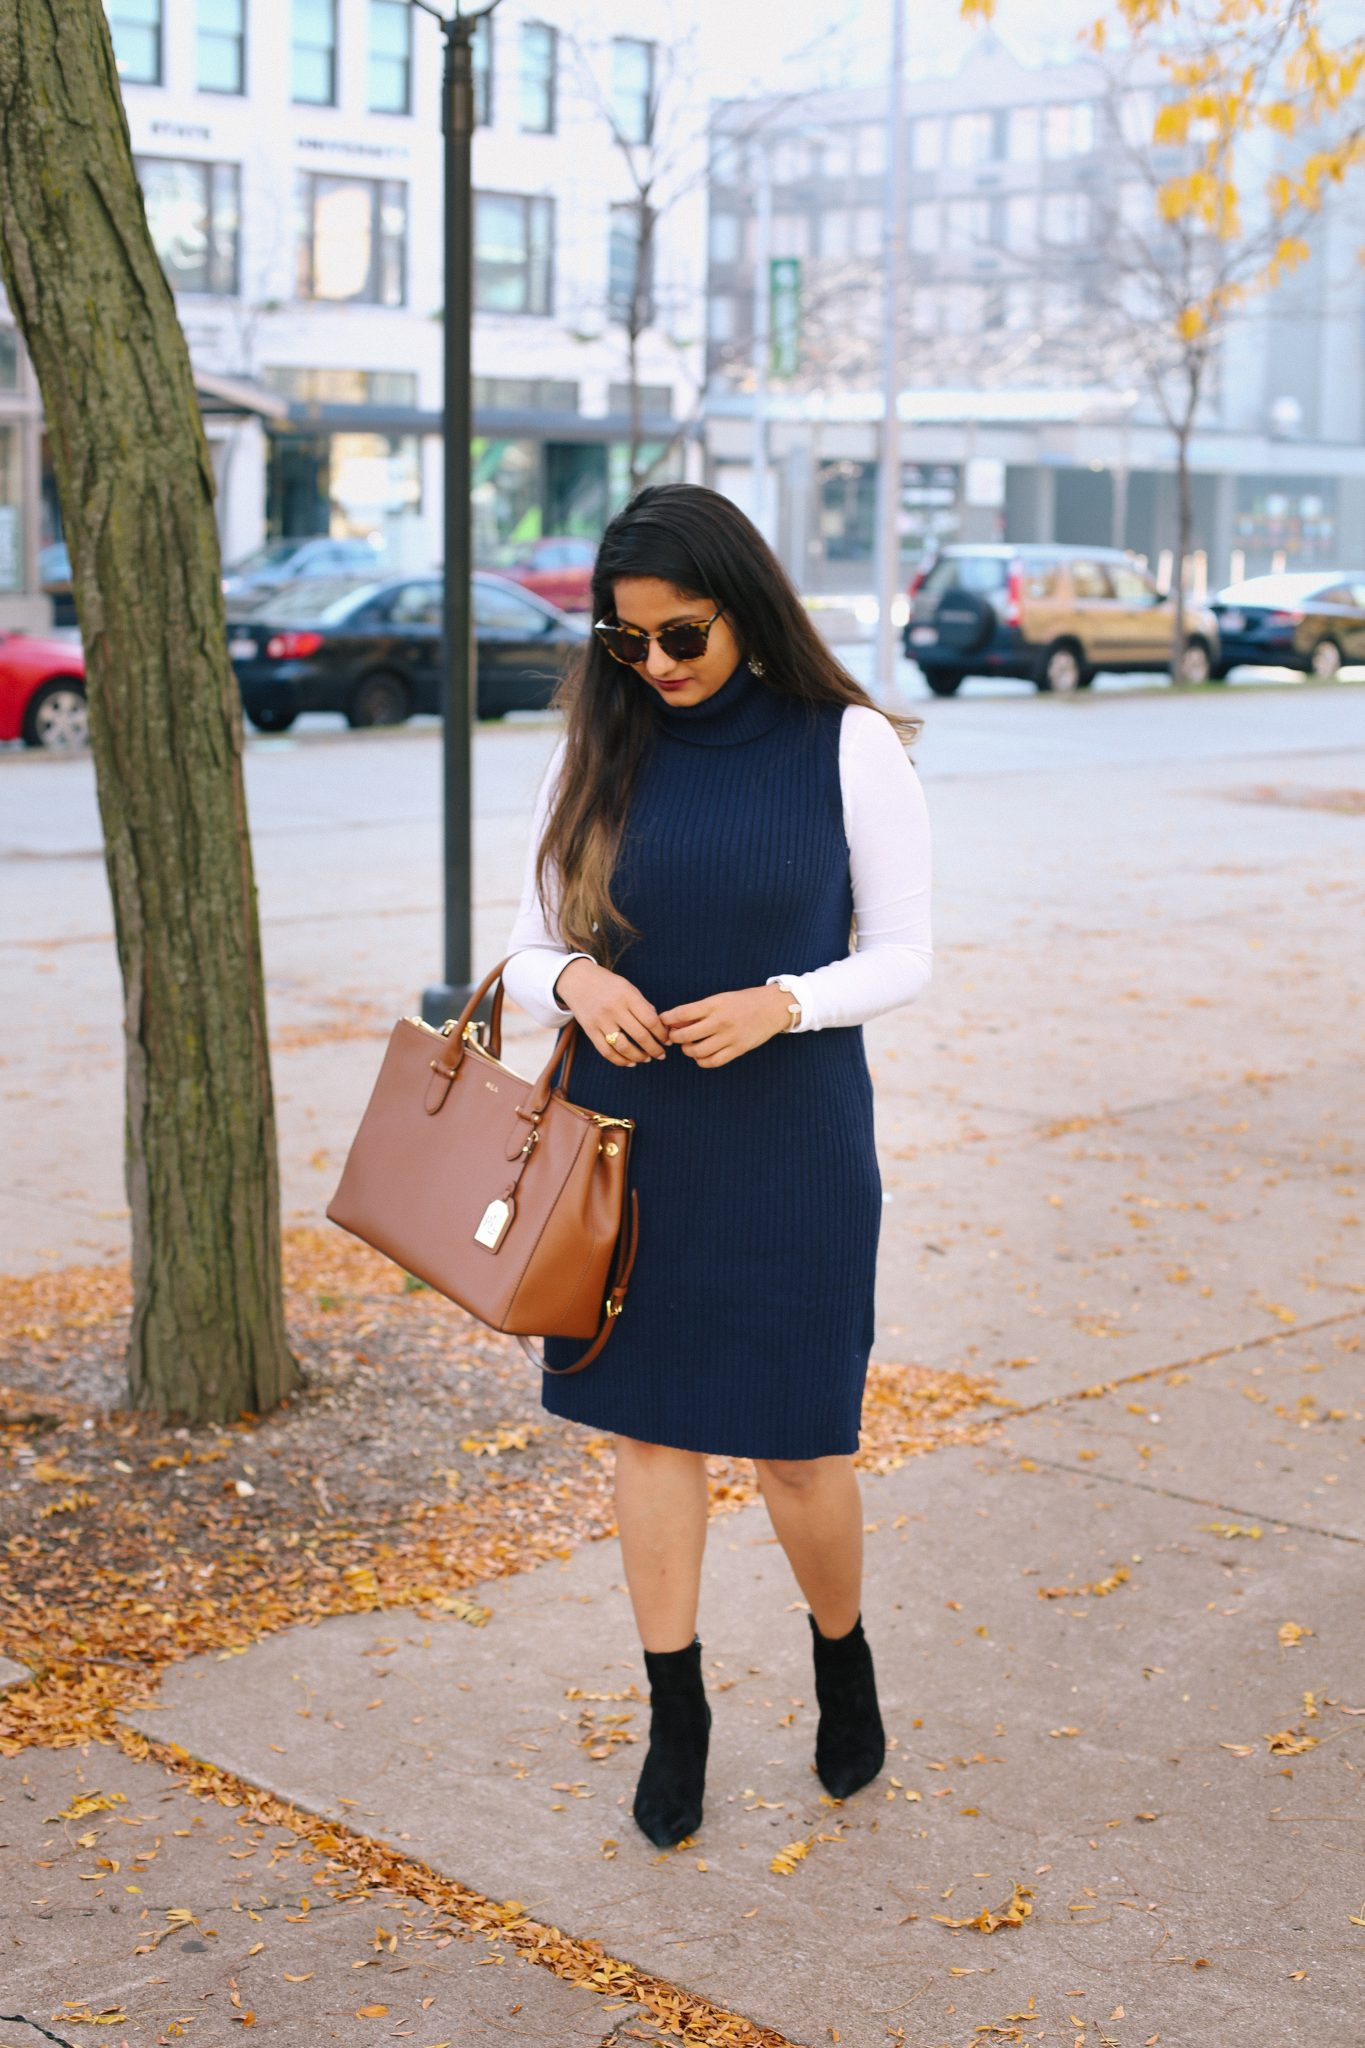 gap-RIBBED-TURTLENECK-TANK-DRESS-1 (1 of 1)